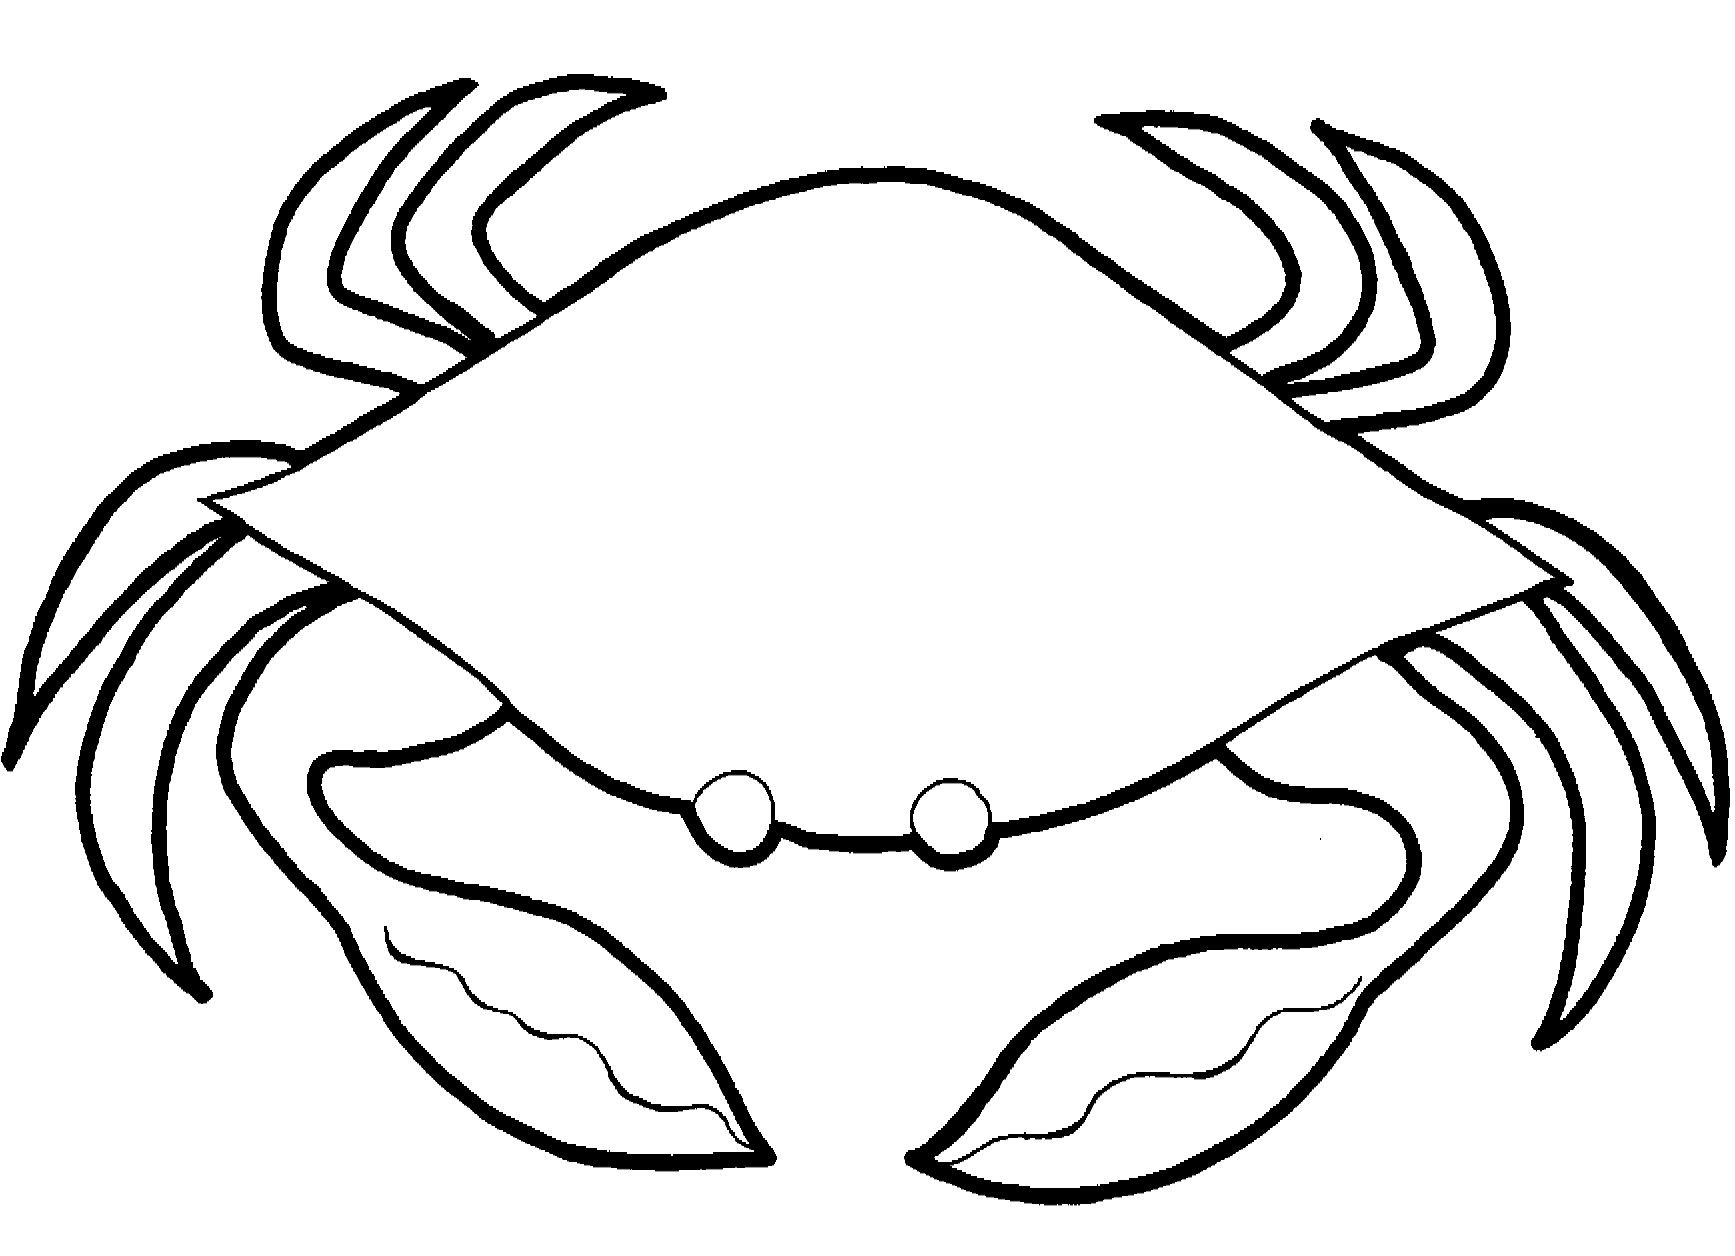 Crab Coloring Pages Free Printable Coloring Pages Simple Crab Coloring Pages Easy Coloring Pages Animal Coloring Pages Coloring Pages